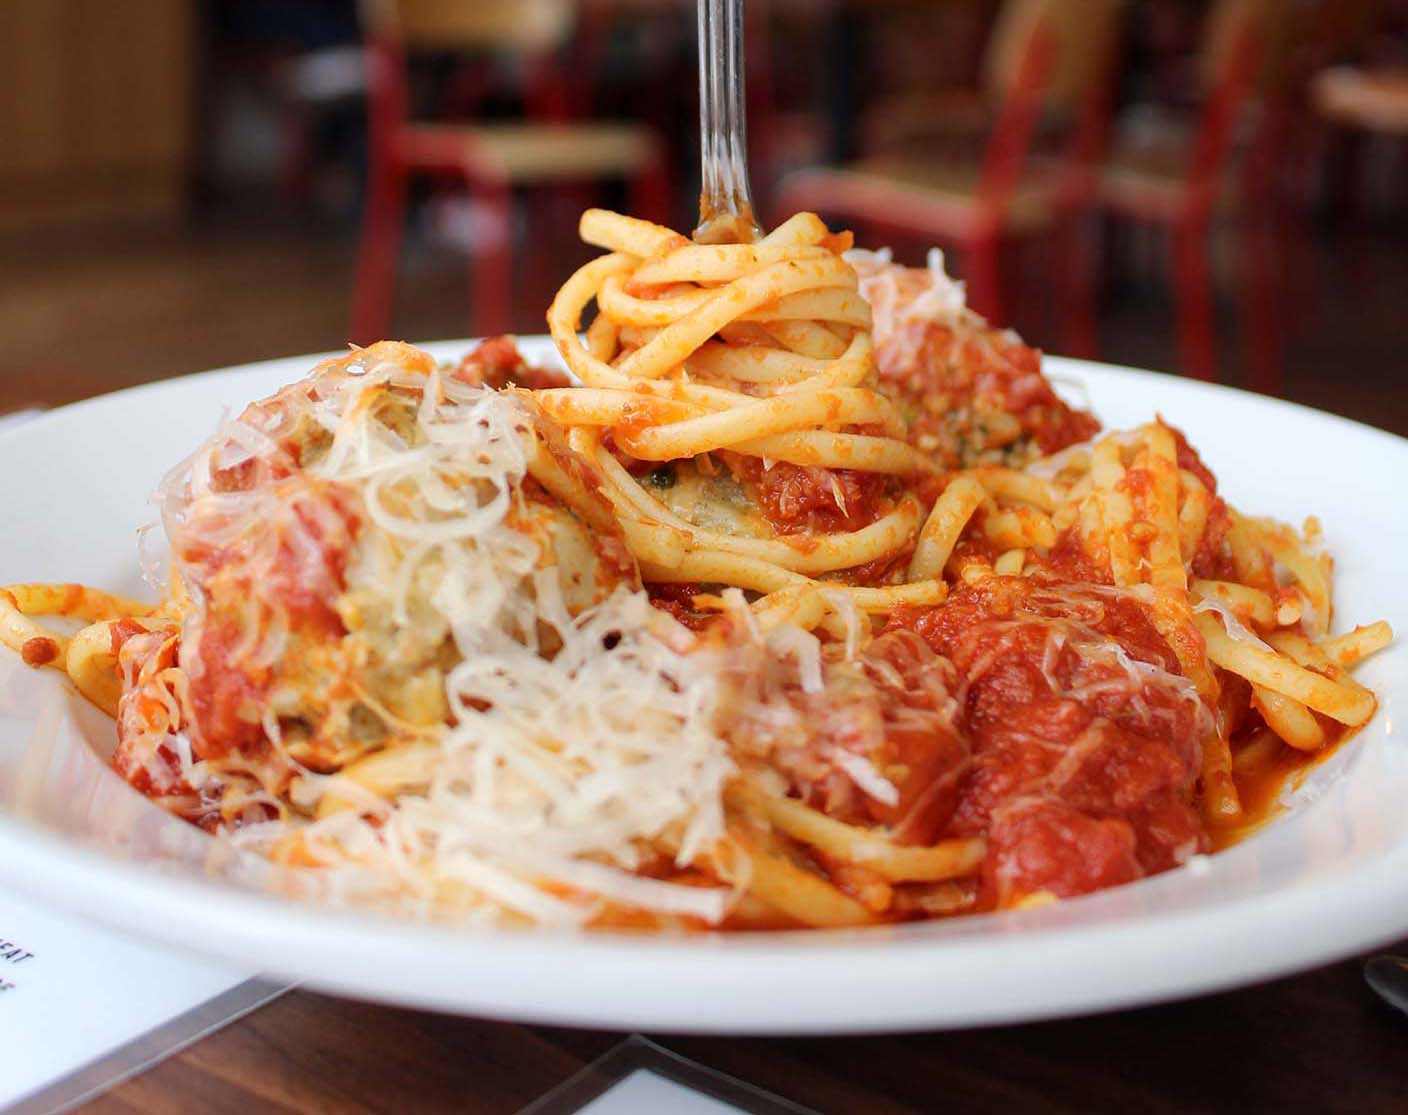 plate of spaghetti and meatballs with fork sticking up